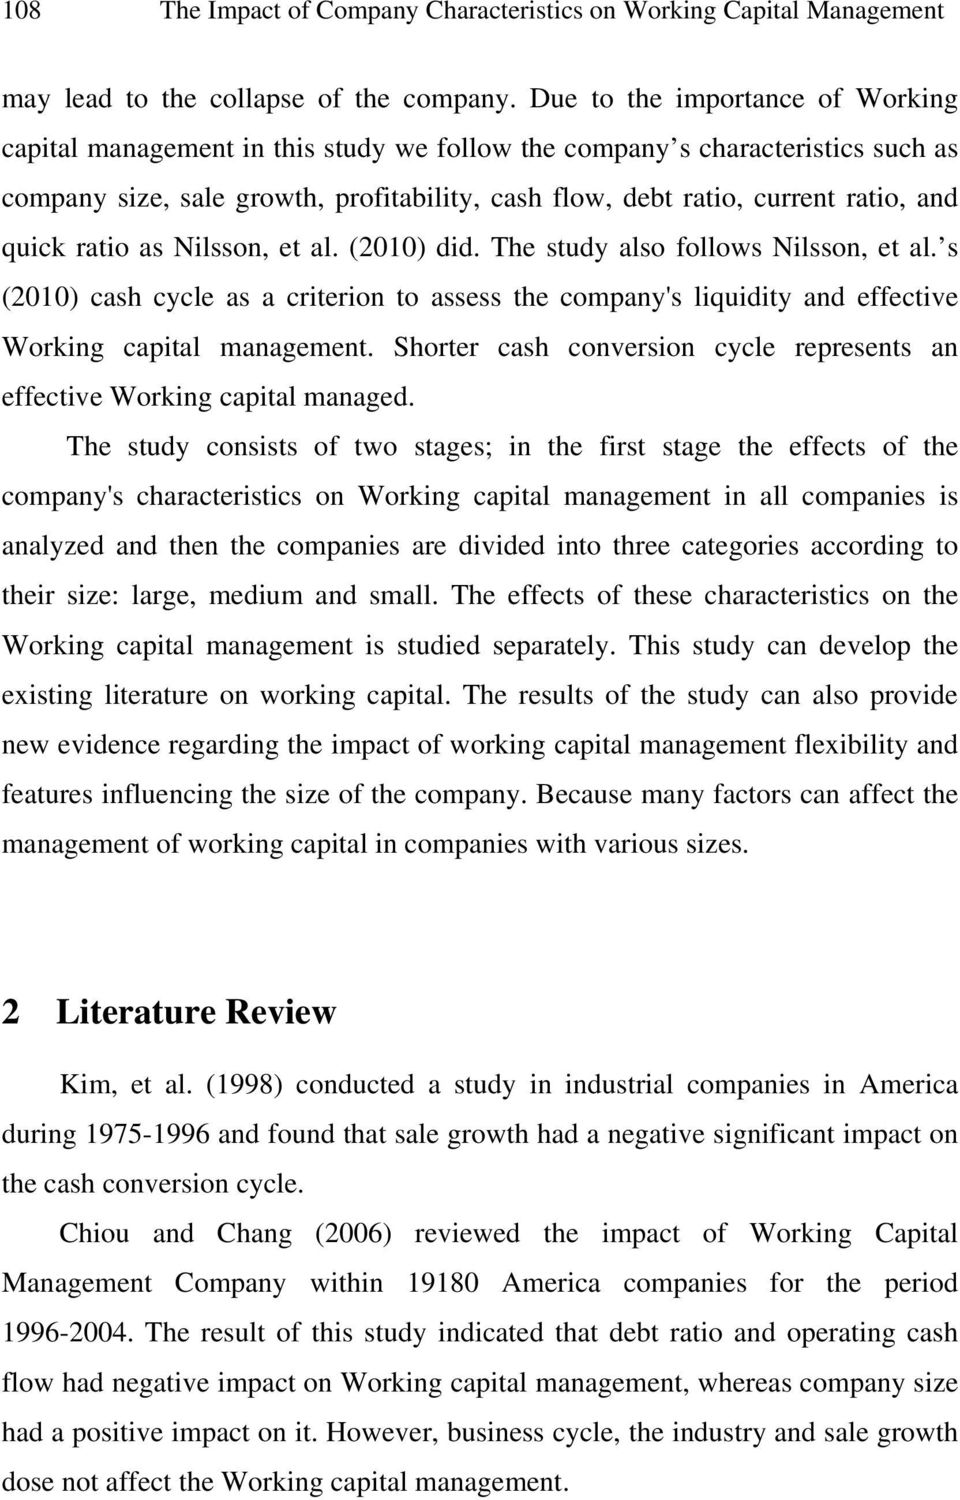 quick ratio as Nilsson, et al. (2010) did. The study also follows Nilsson, et al. s (2010) cash cycle as a criterion to assess the company's liquidity and effective Working capital management.